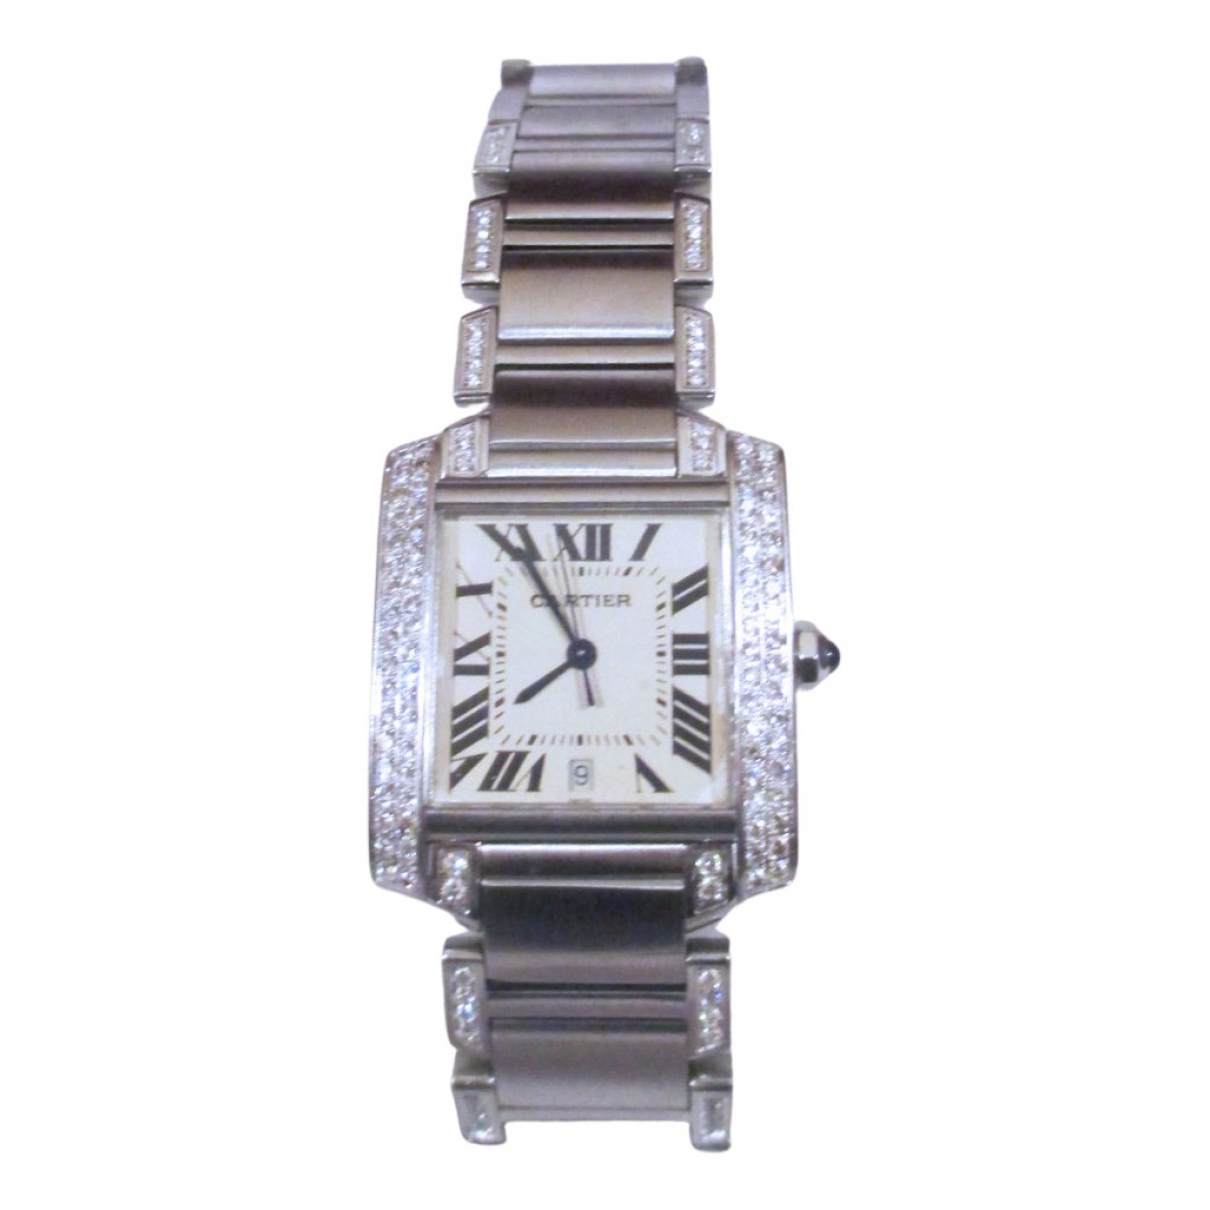 Cartier Tank Francaise Uhr in  Silber Stahl